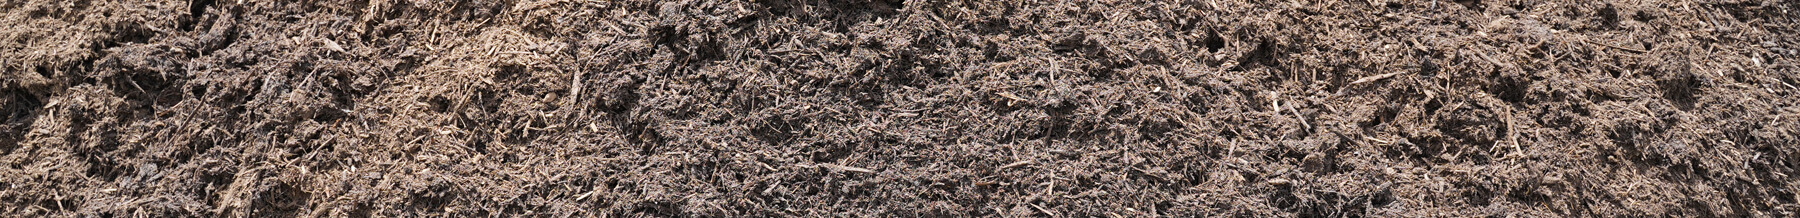 new-earth-humus-compost-wide